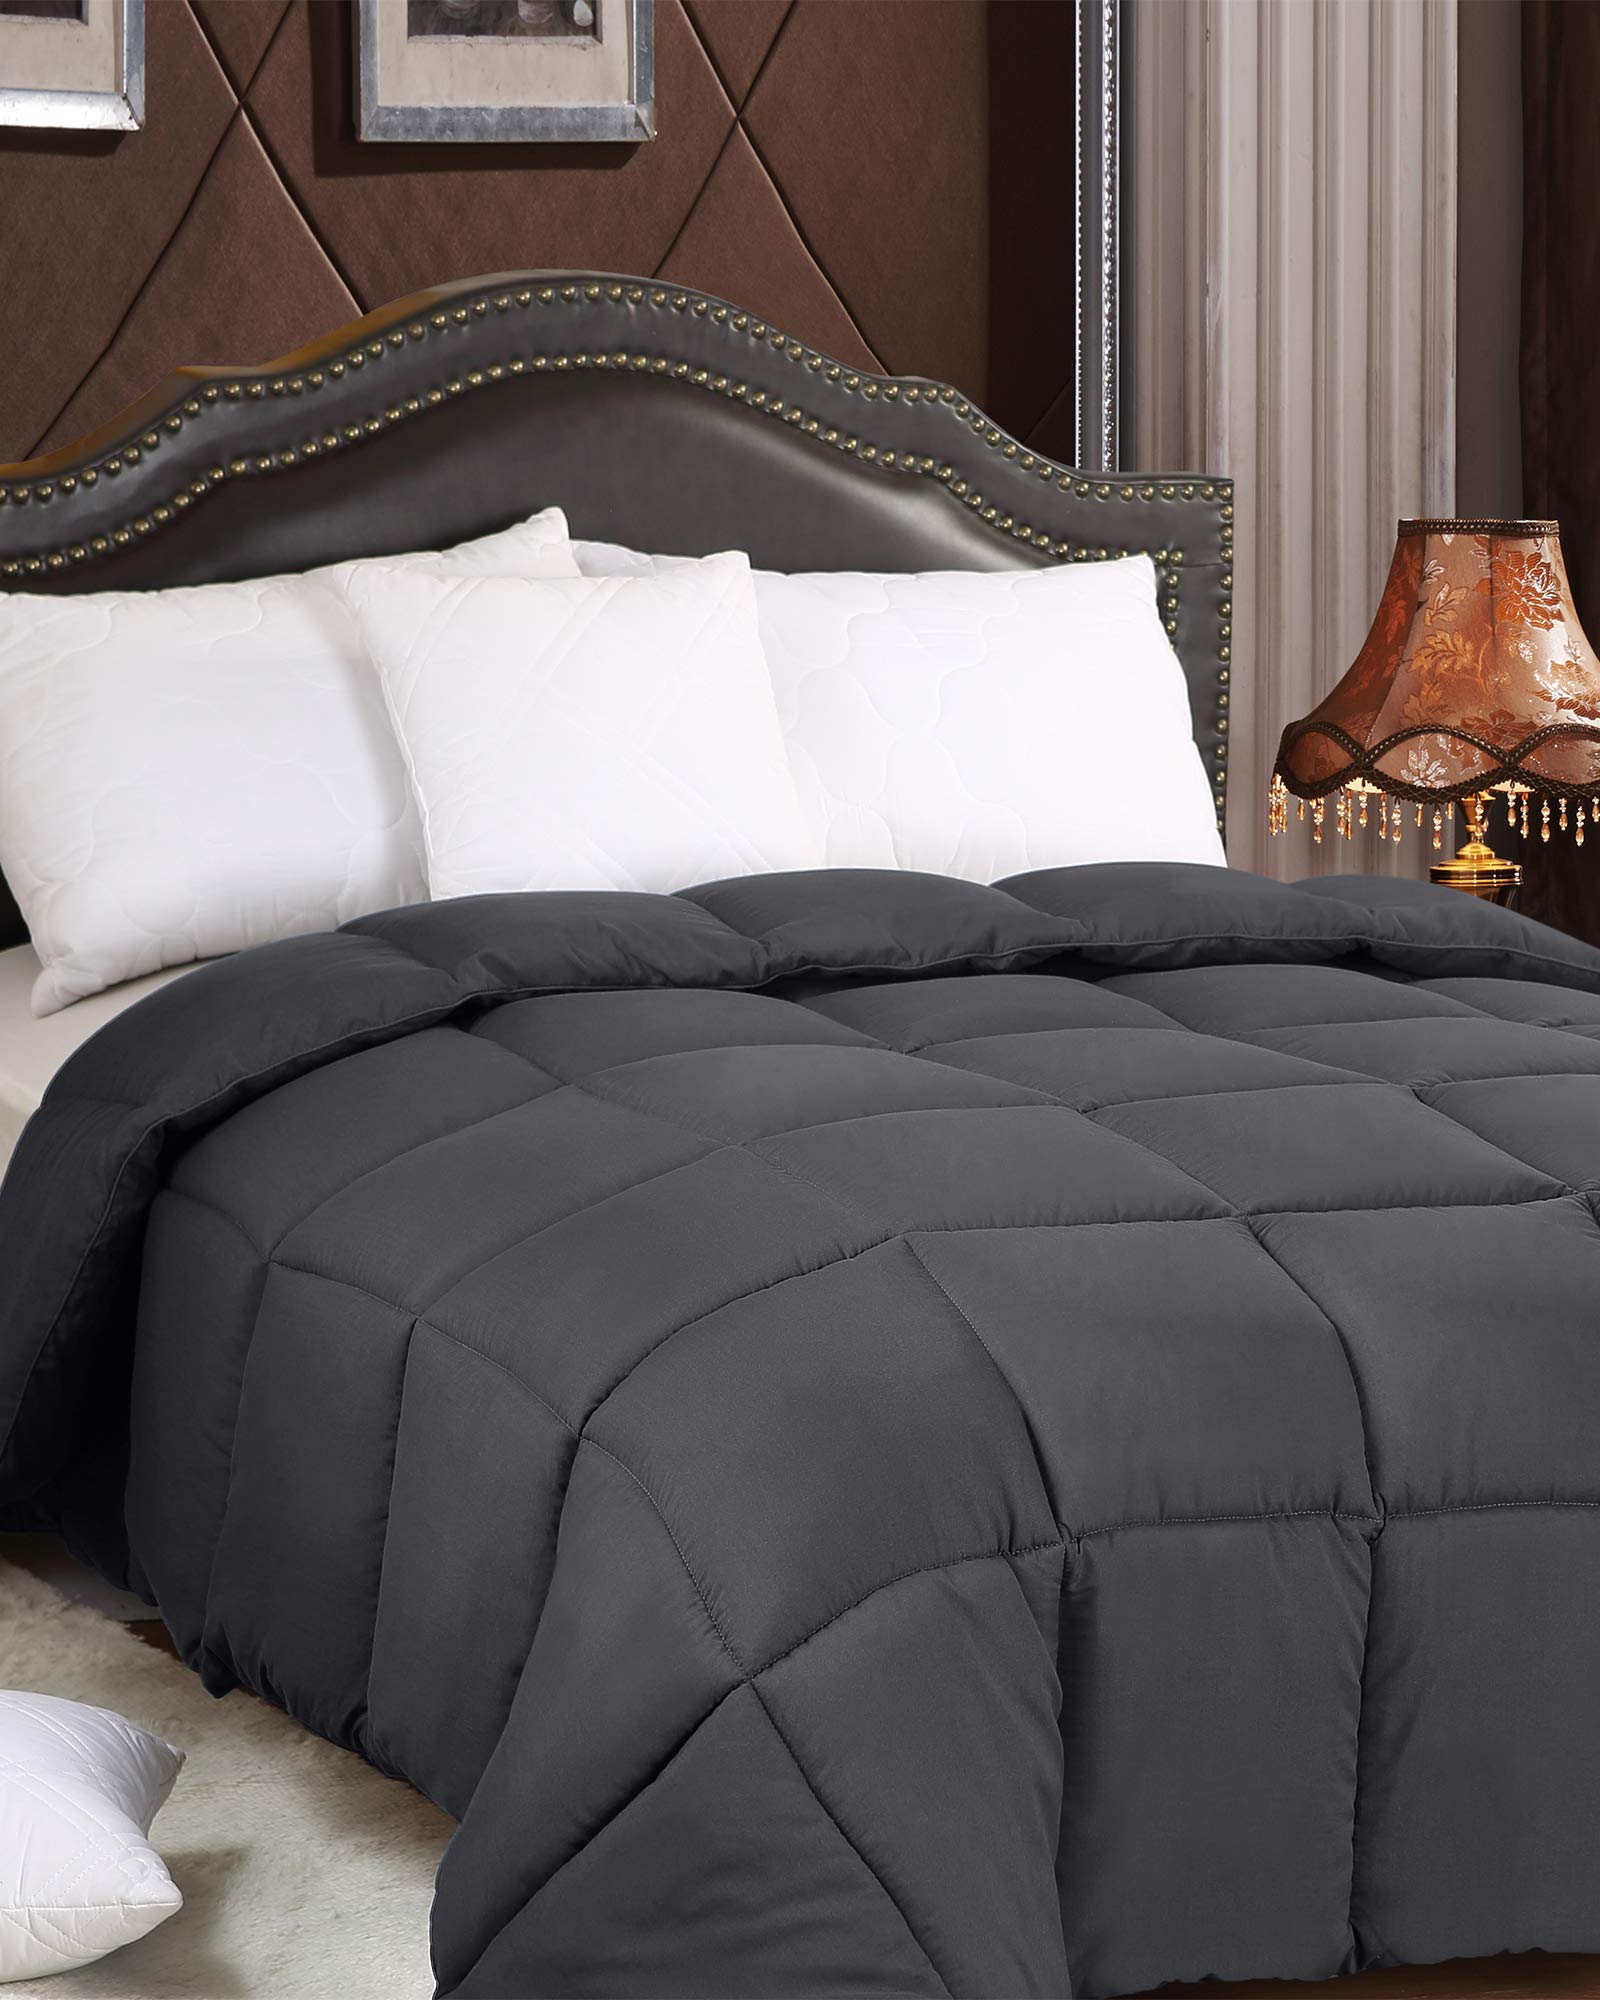 Utopia Bedding All Season 250 GSM Comforter - Soft Down Alternative Comforter - Plush Siliconized Fiberfill Duvet Insert - Box Stitched (Full/Queen, Grey) by Utopia Bedding (Image #3)